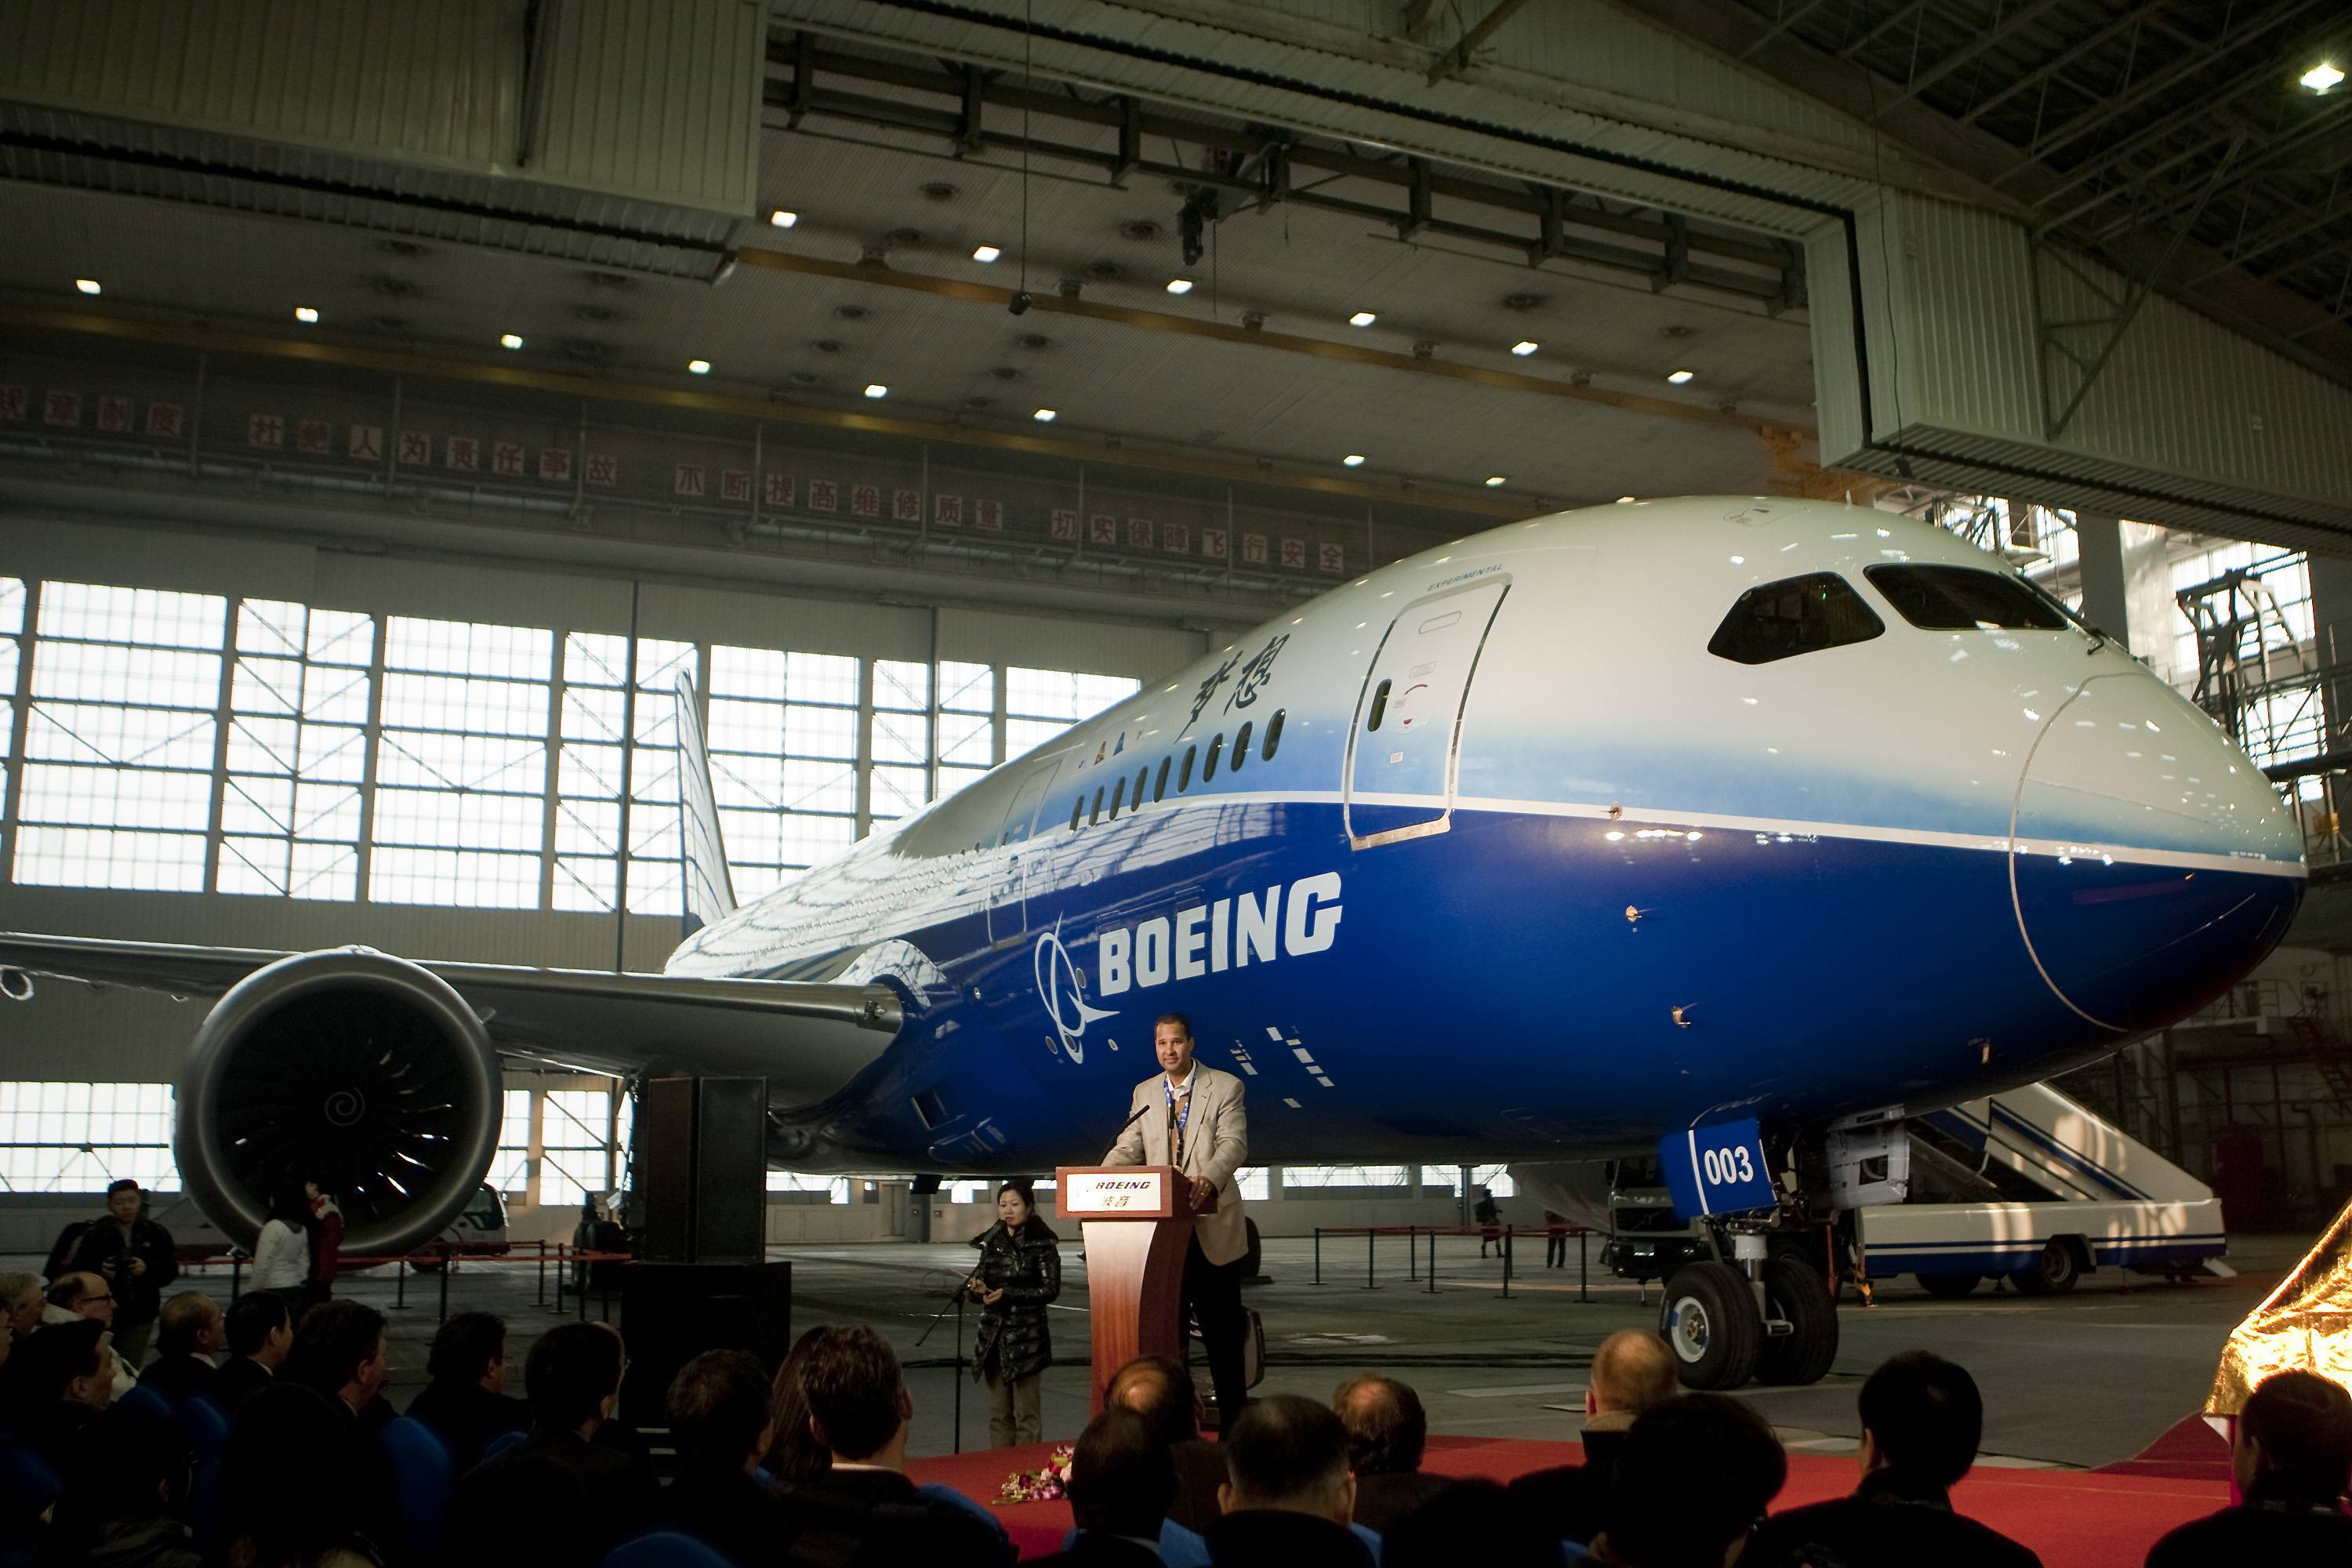 Boeing lands $500 million contribution for pension funds